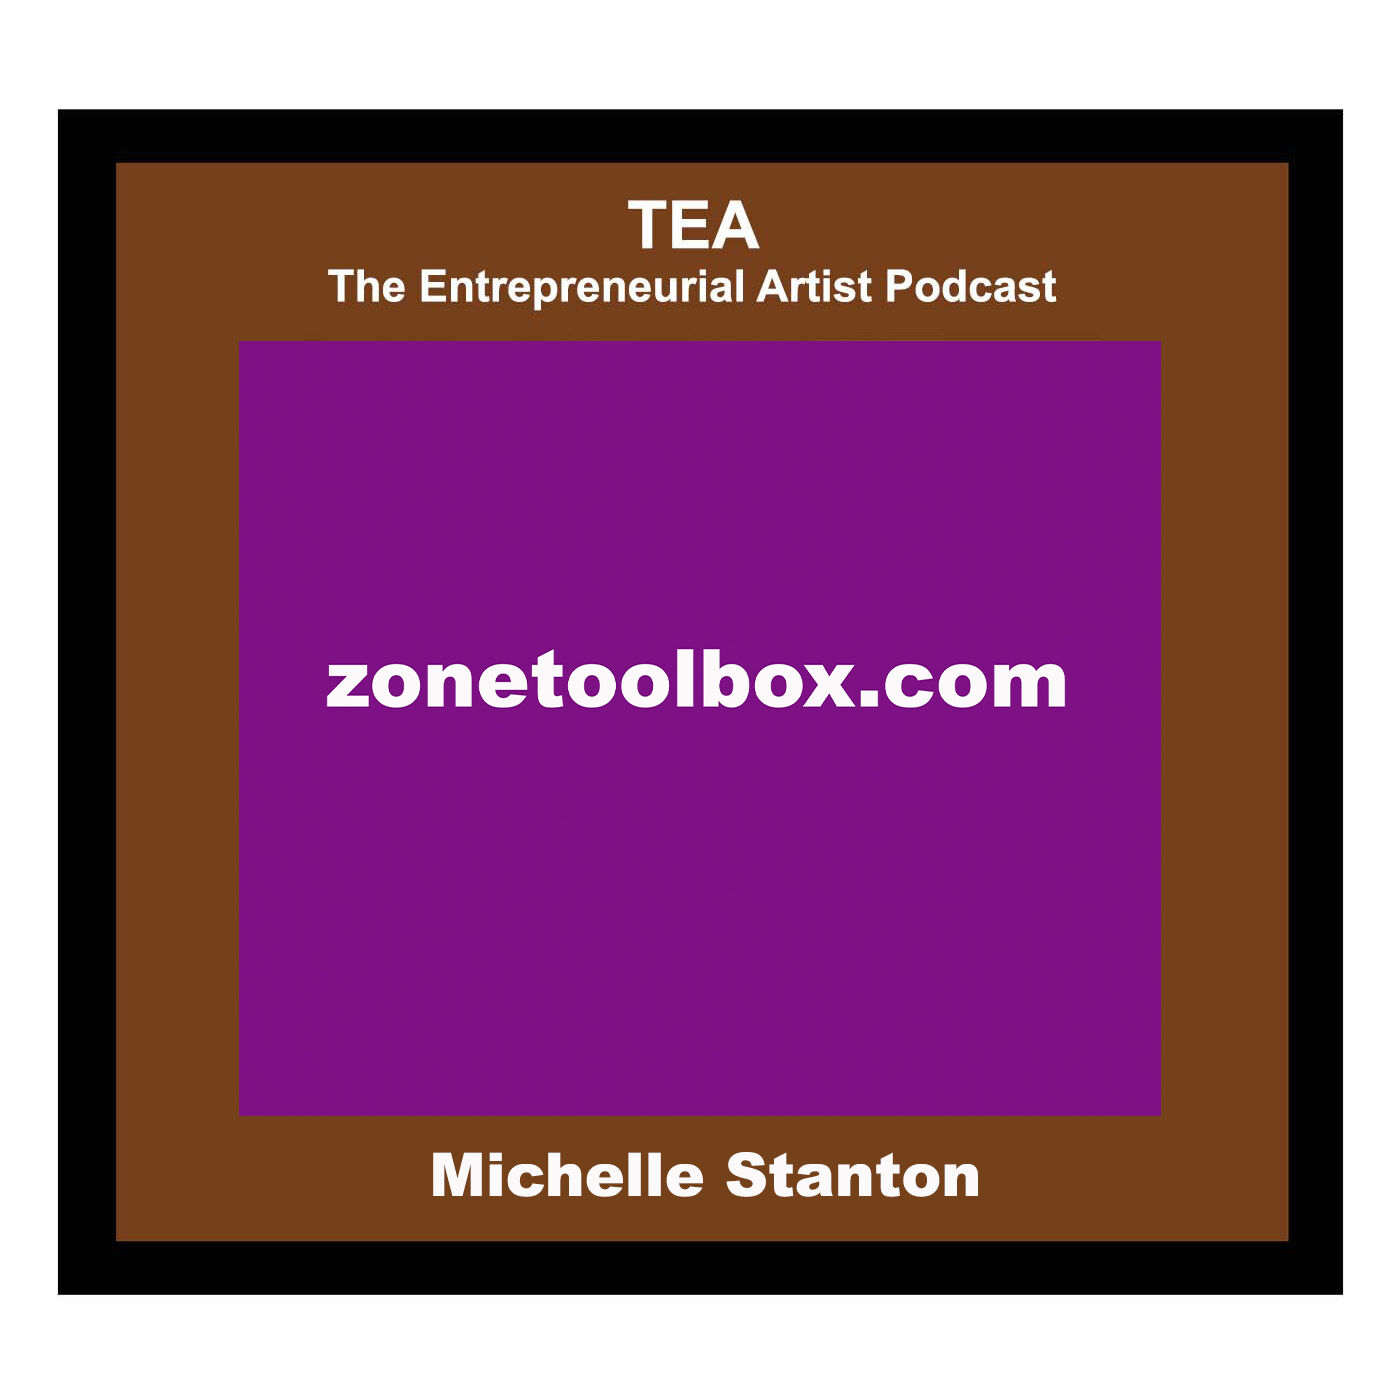 TOPIC: Getting in the Zone for Creativity, Happiness, & Success: Michelle/Zone High & Tania/TEA Podcast